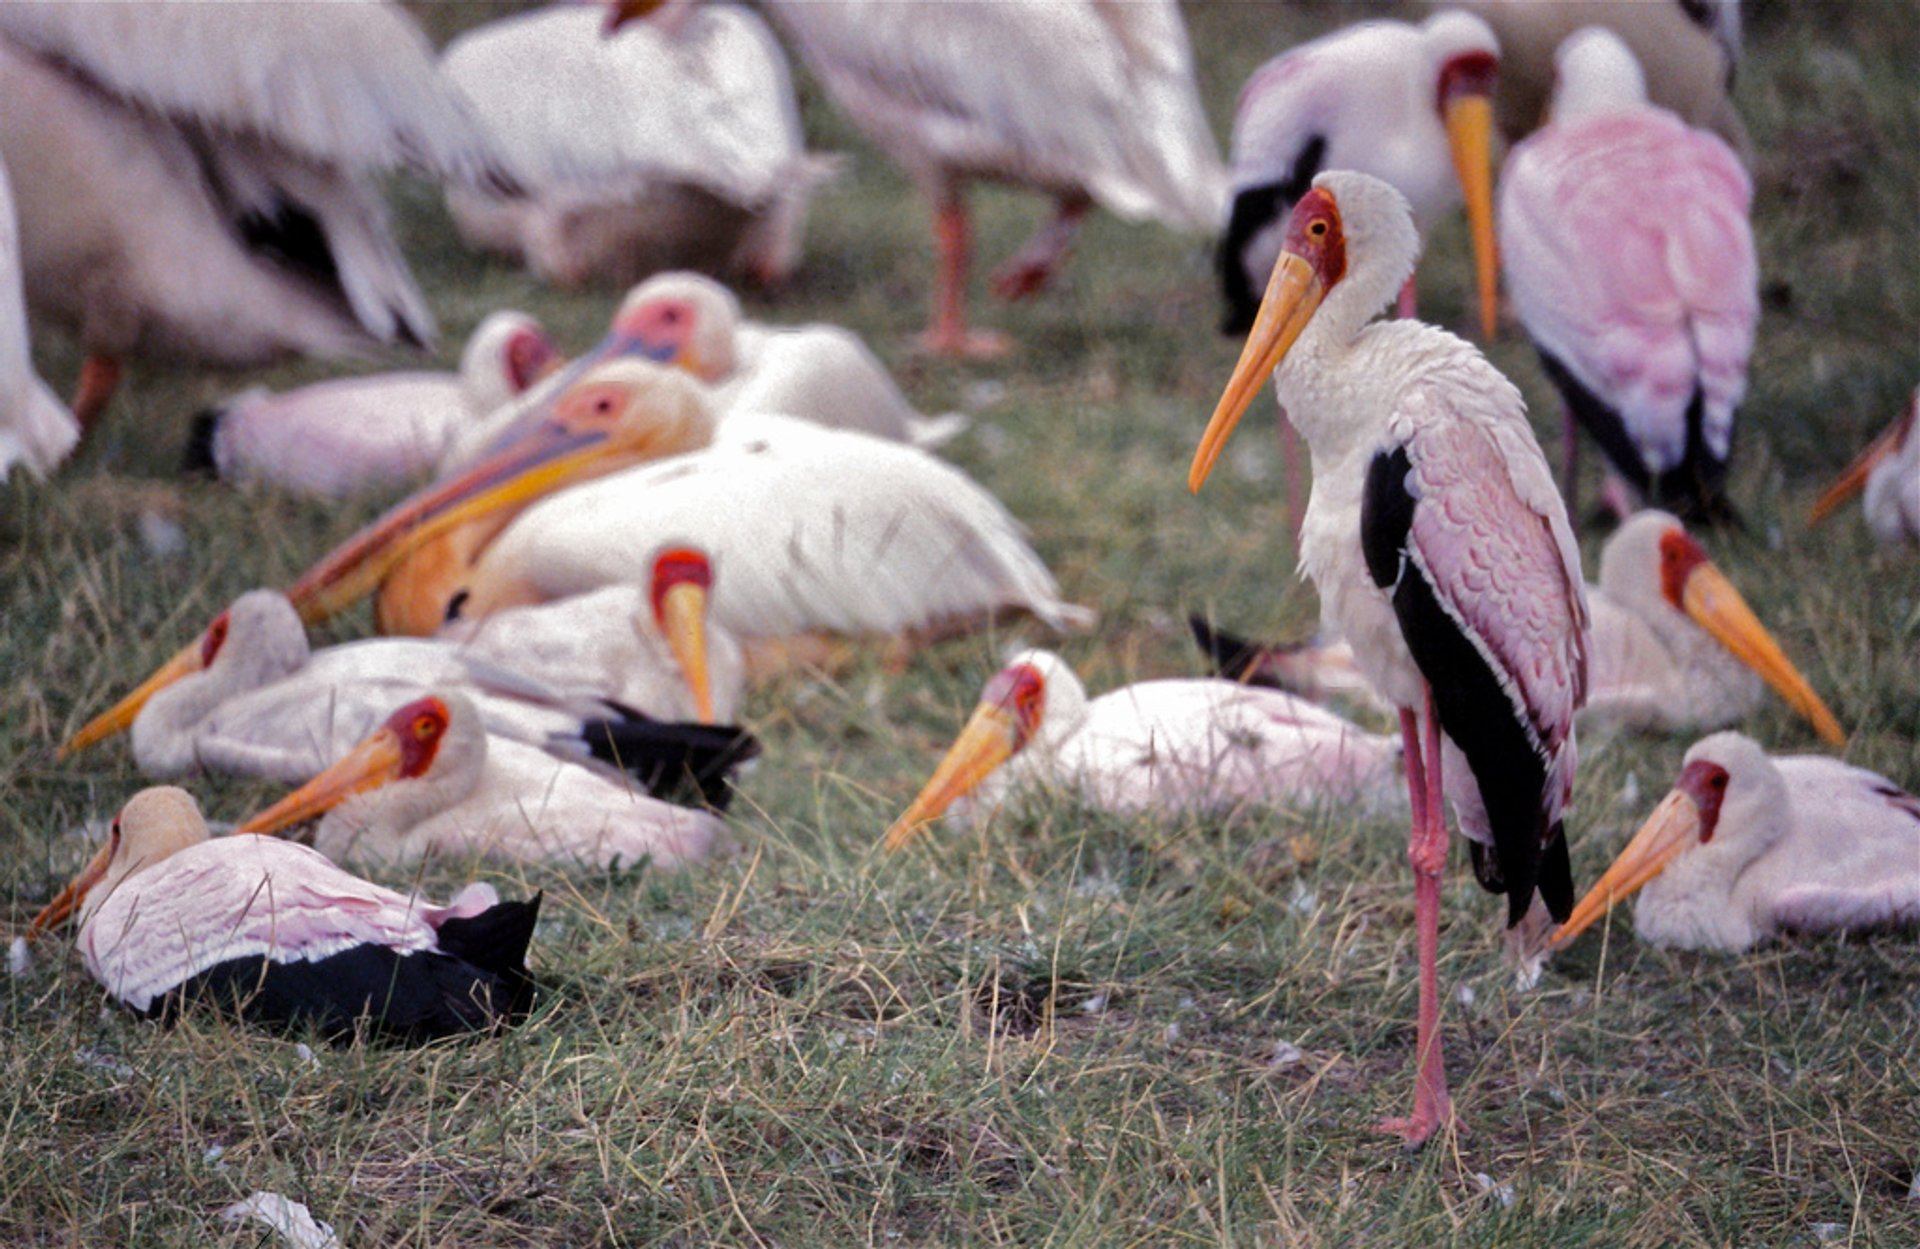 Yellow-billed Storks (Mycteria ibis) 2020